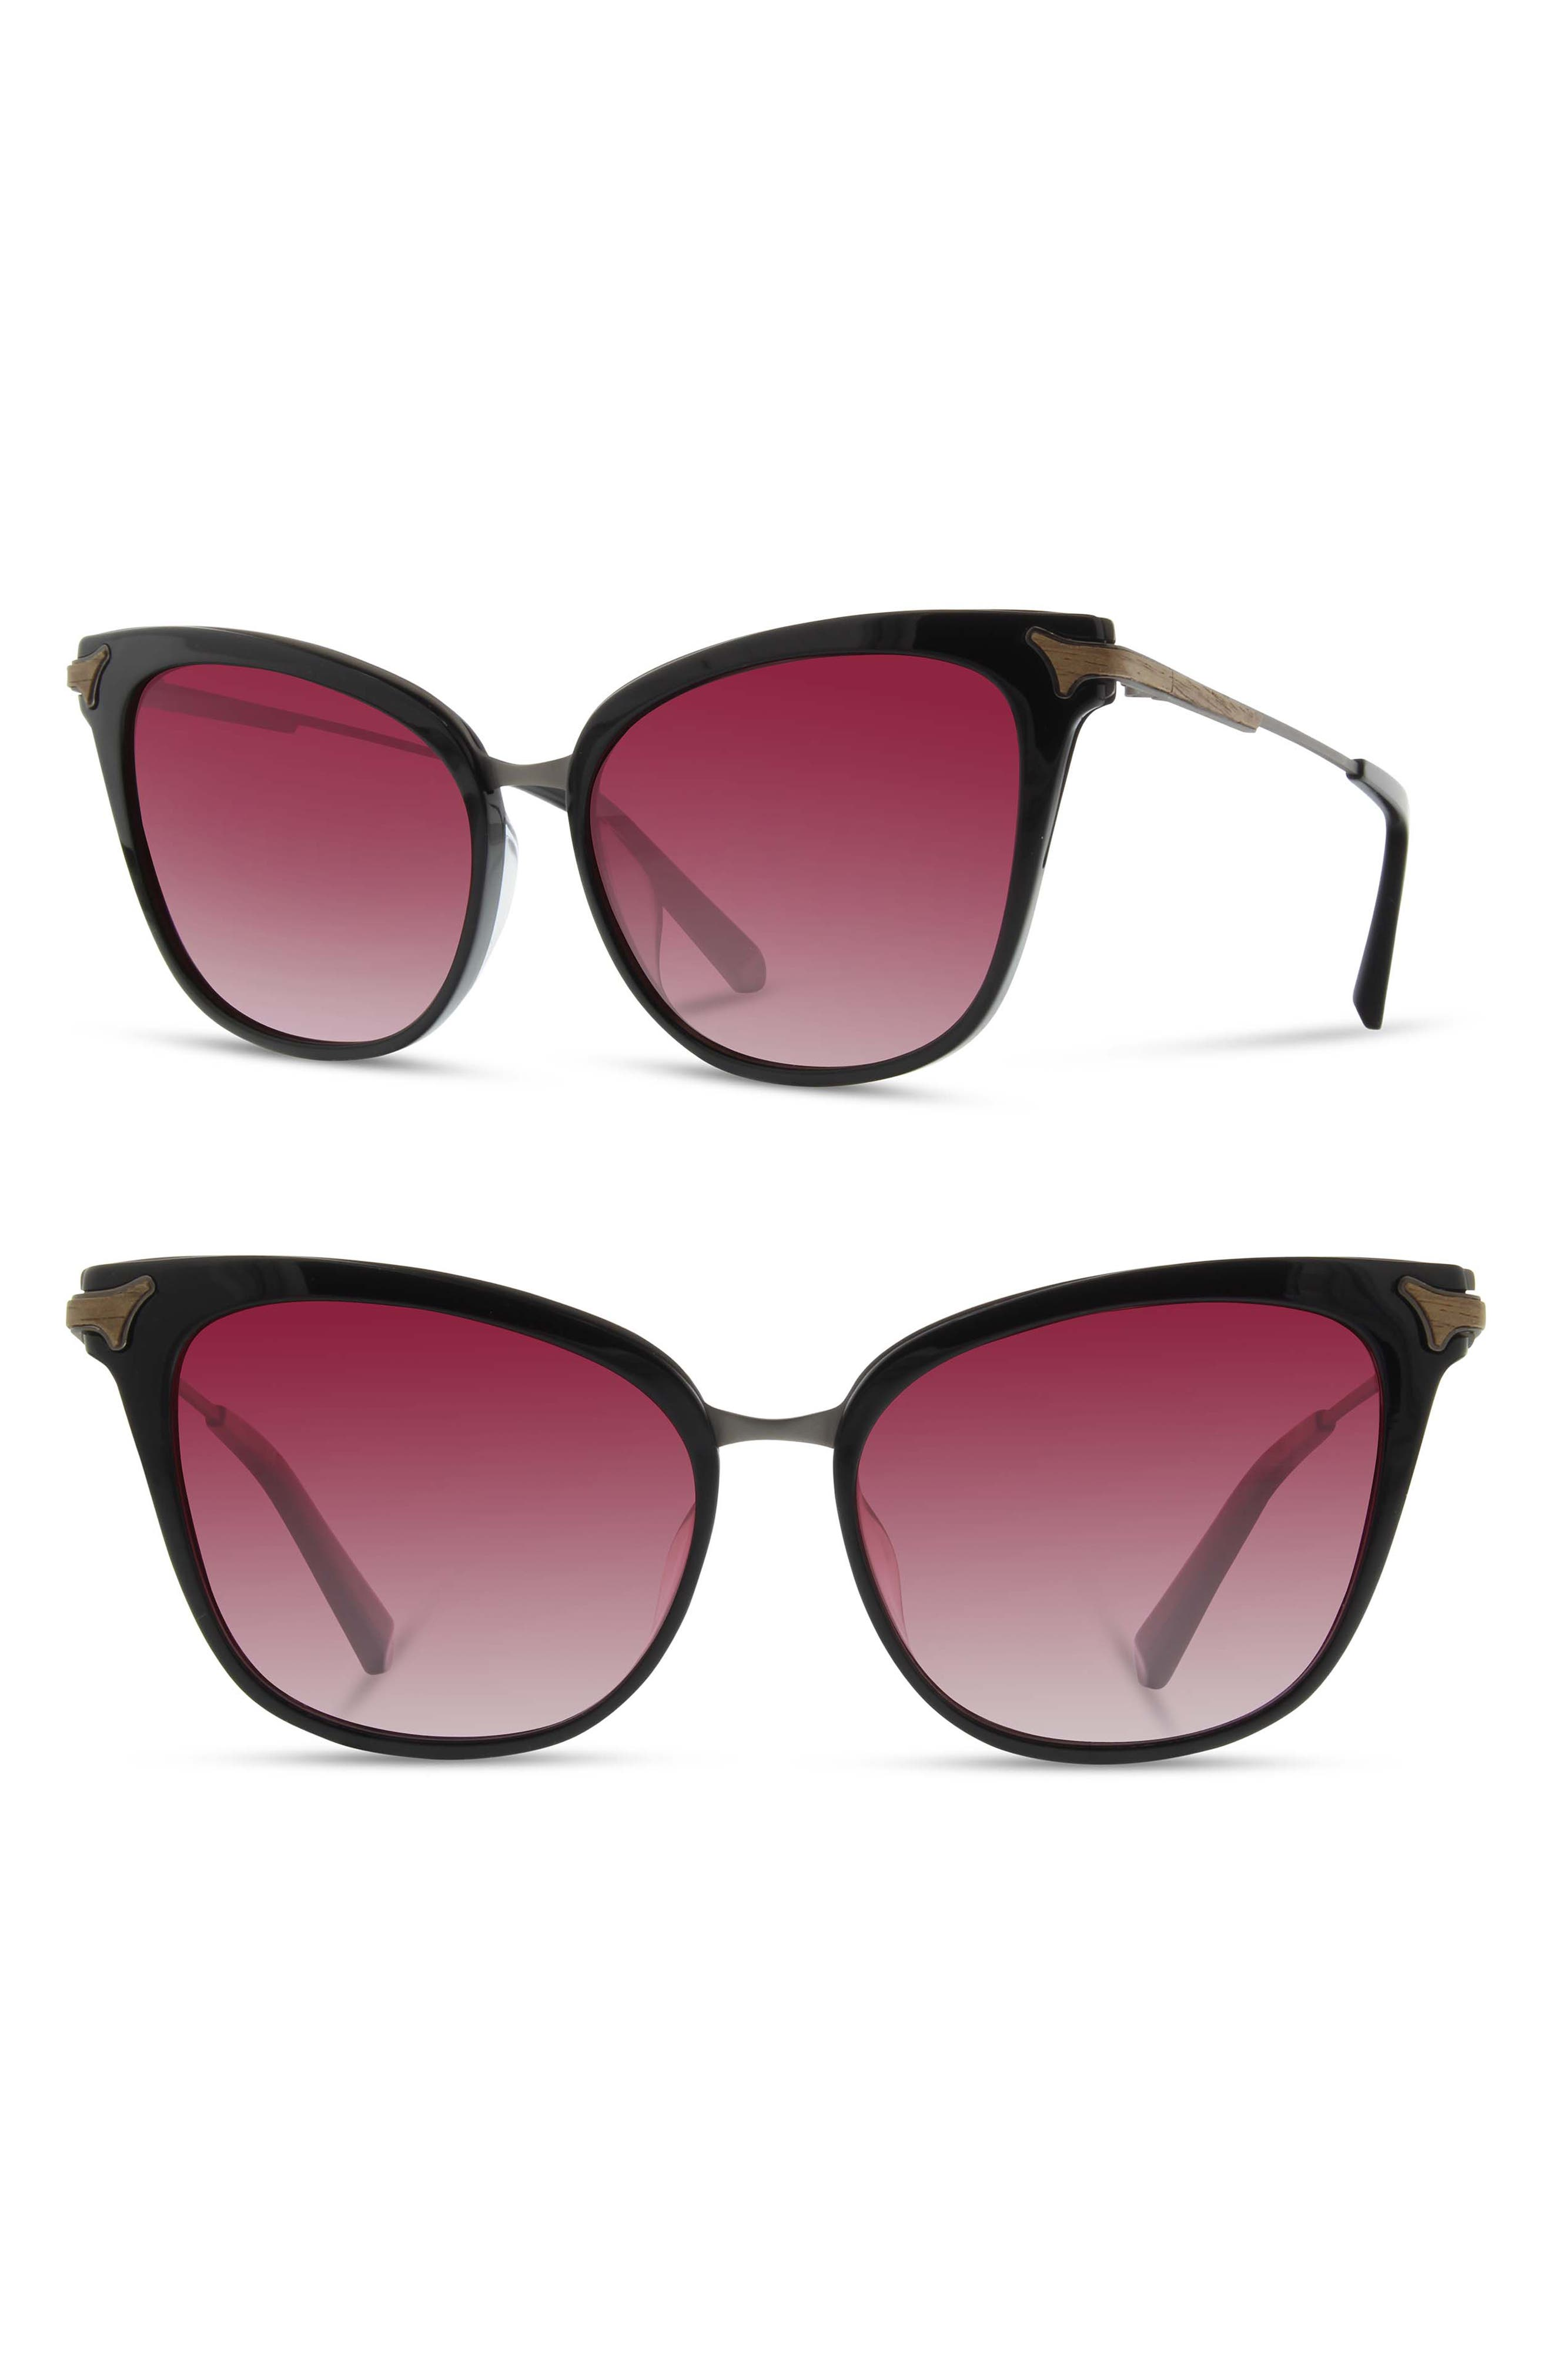 Arlene 56Mm Polarized Cat Eye Sunglasses - Black/ Gunmetal/ Rose Fade